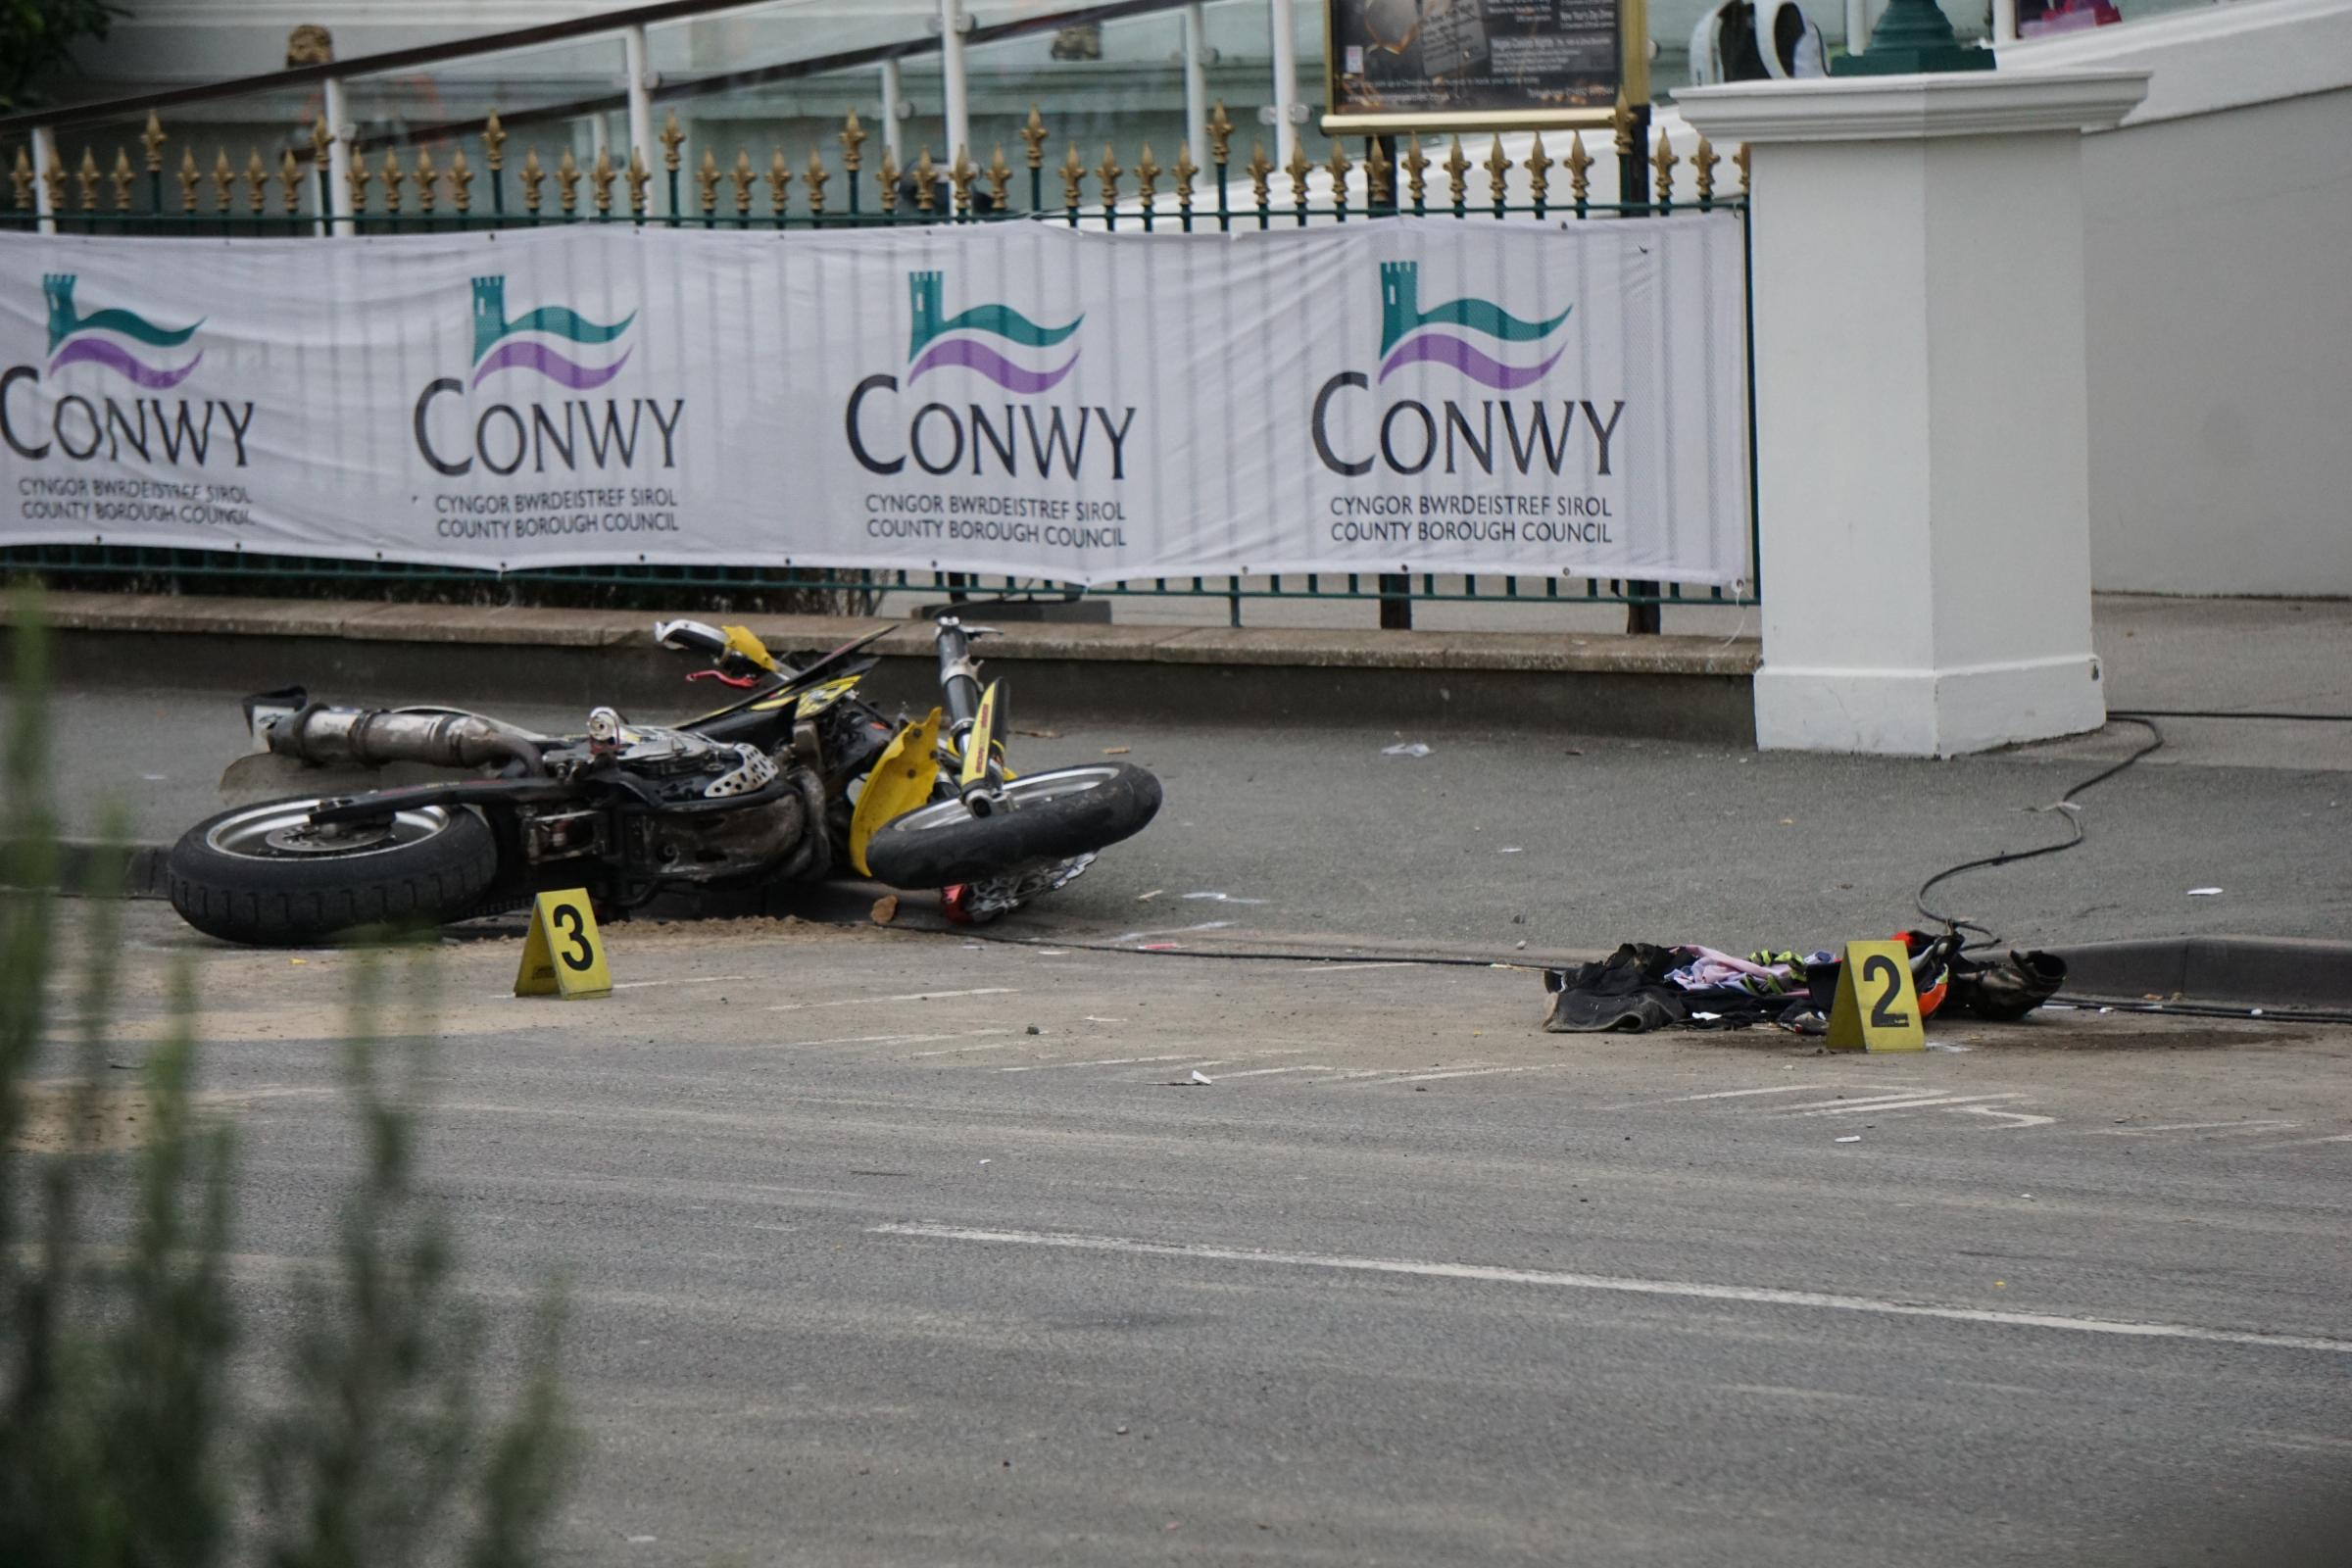 A bike at the scene of the accident. Picture: Patrick Glover